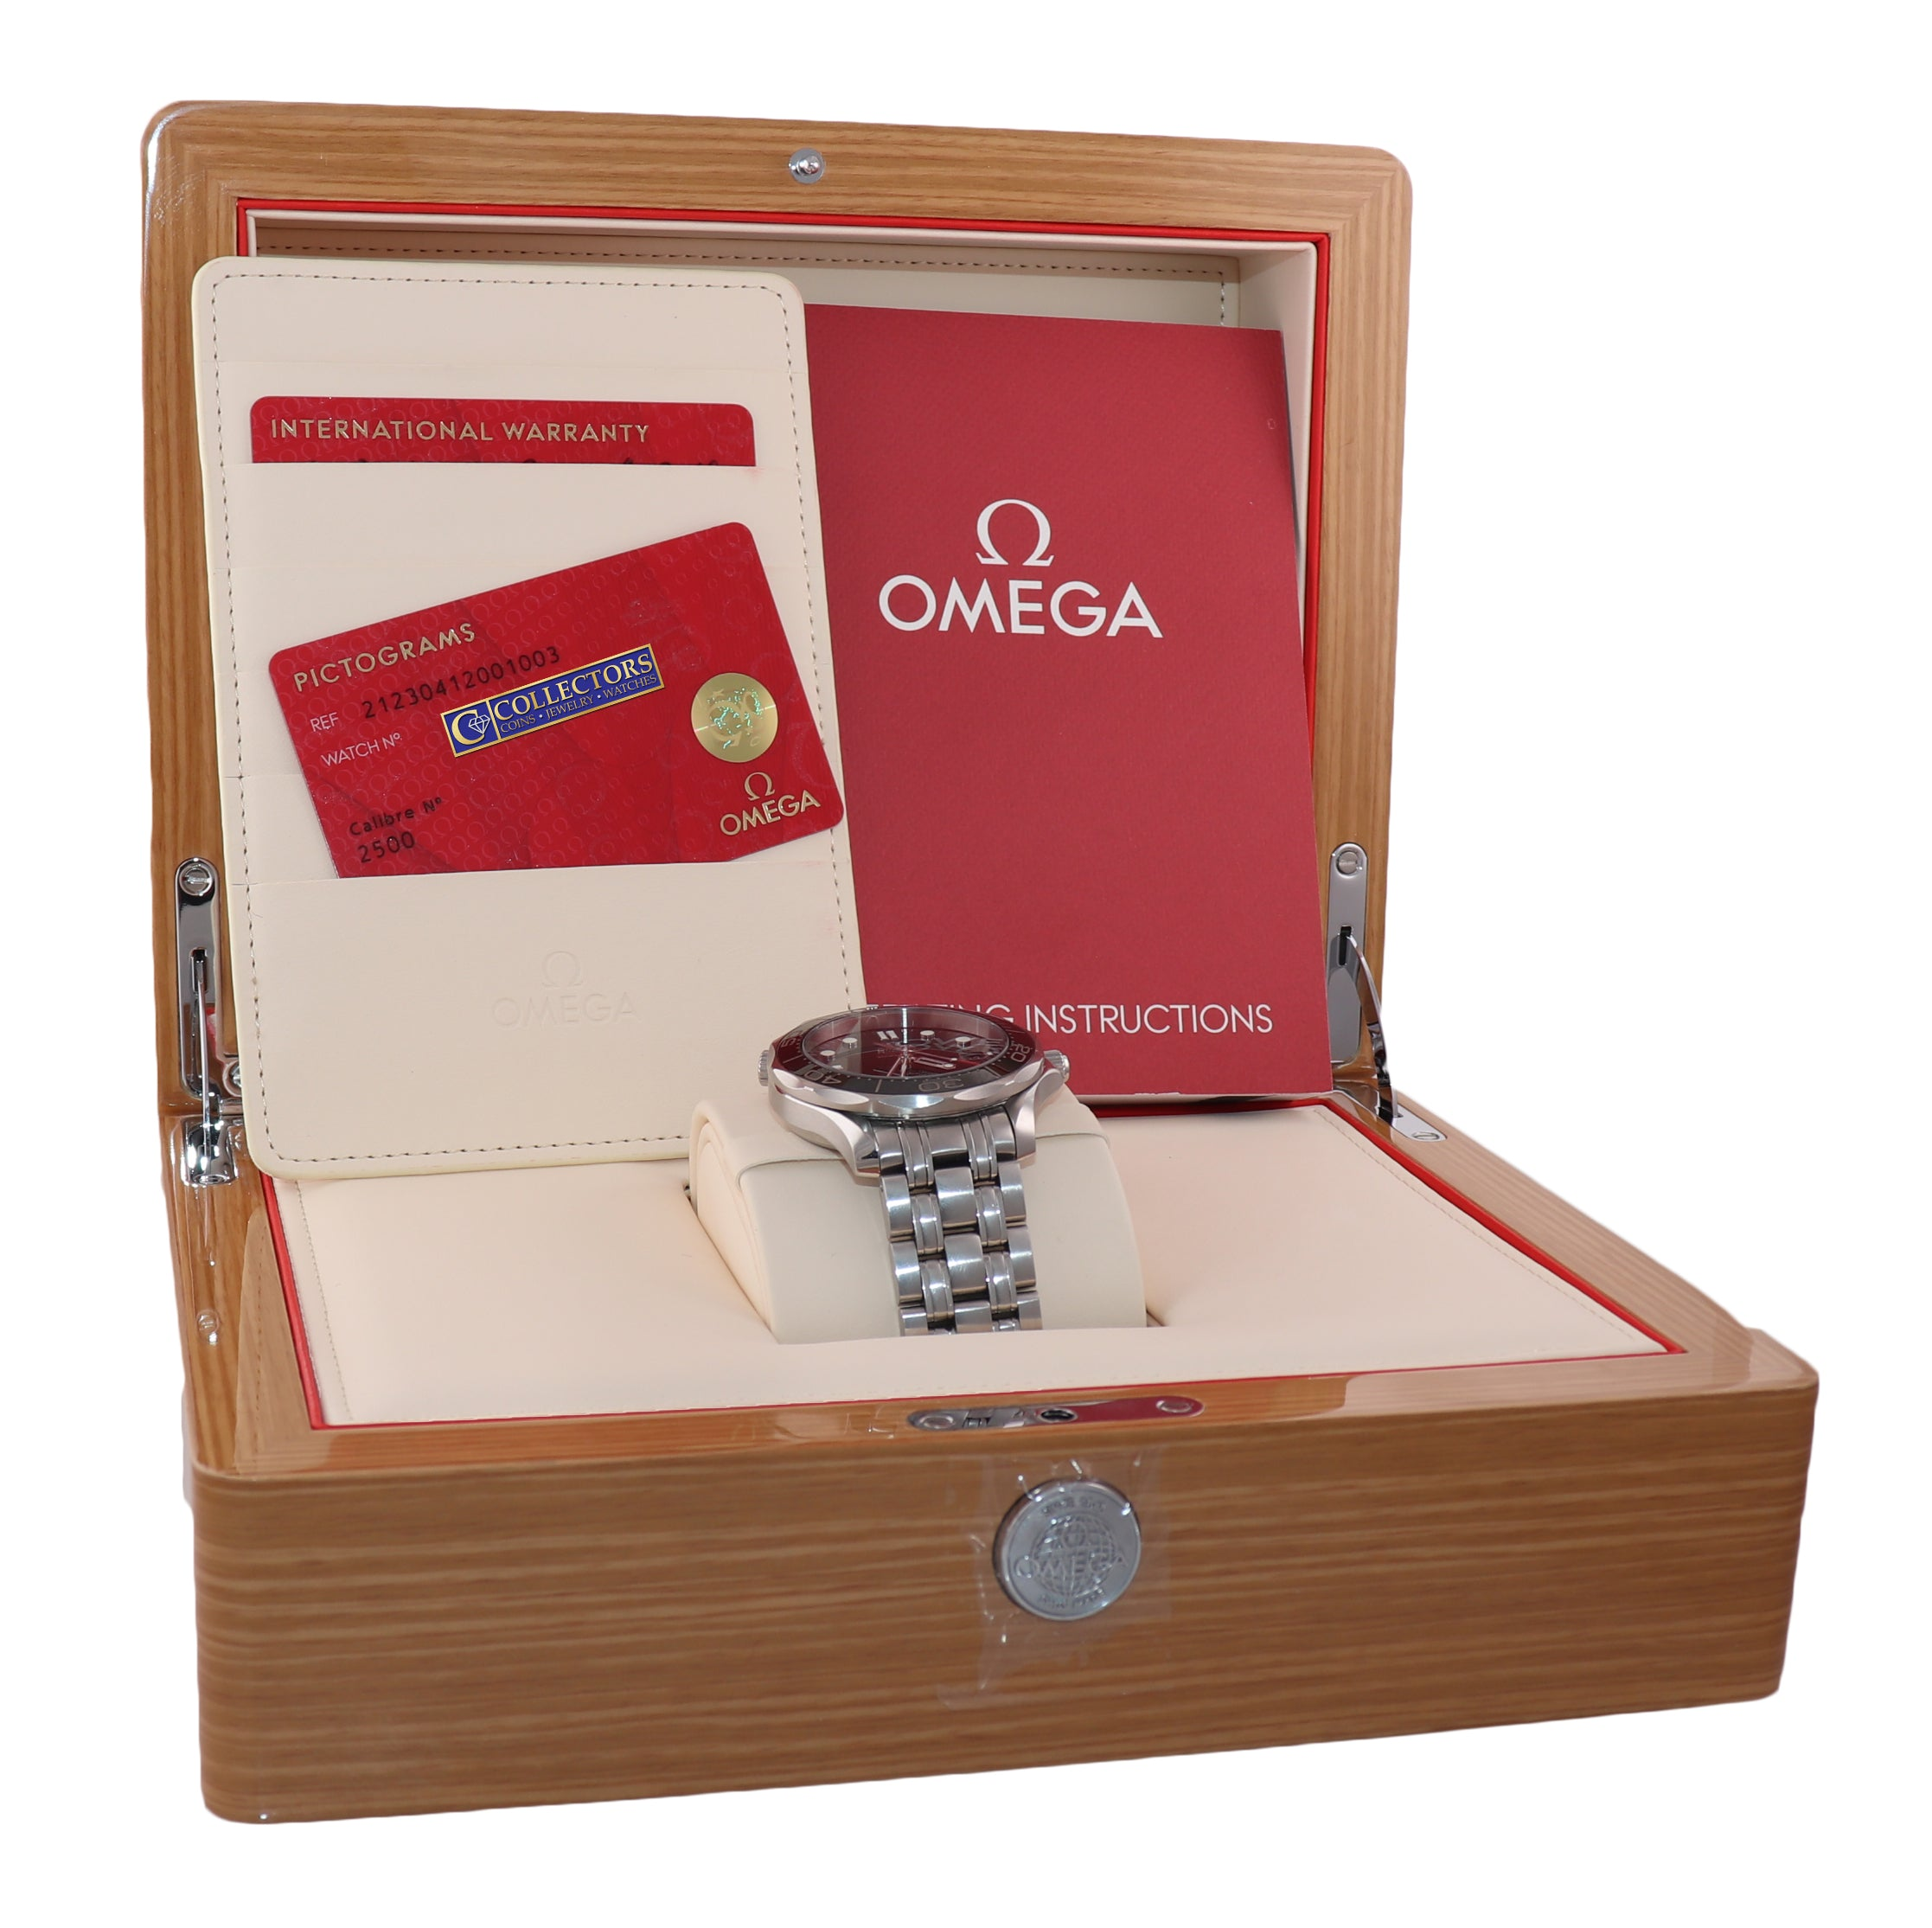 MINT PAPERS Omega Seamaster Black Co-Axial 300M 212.30.41.20.01.003 Date Watch